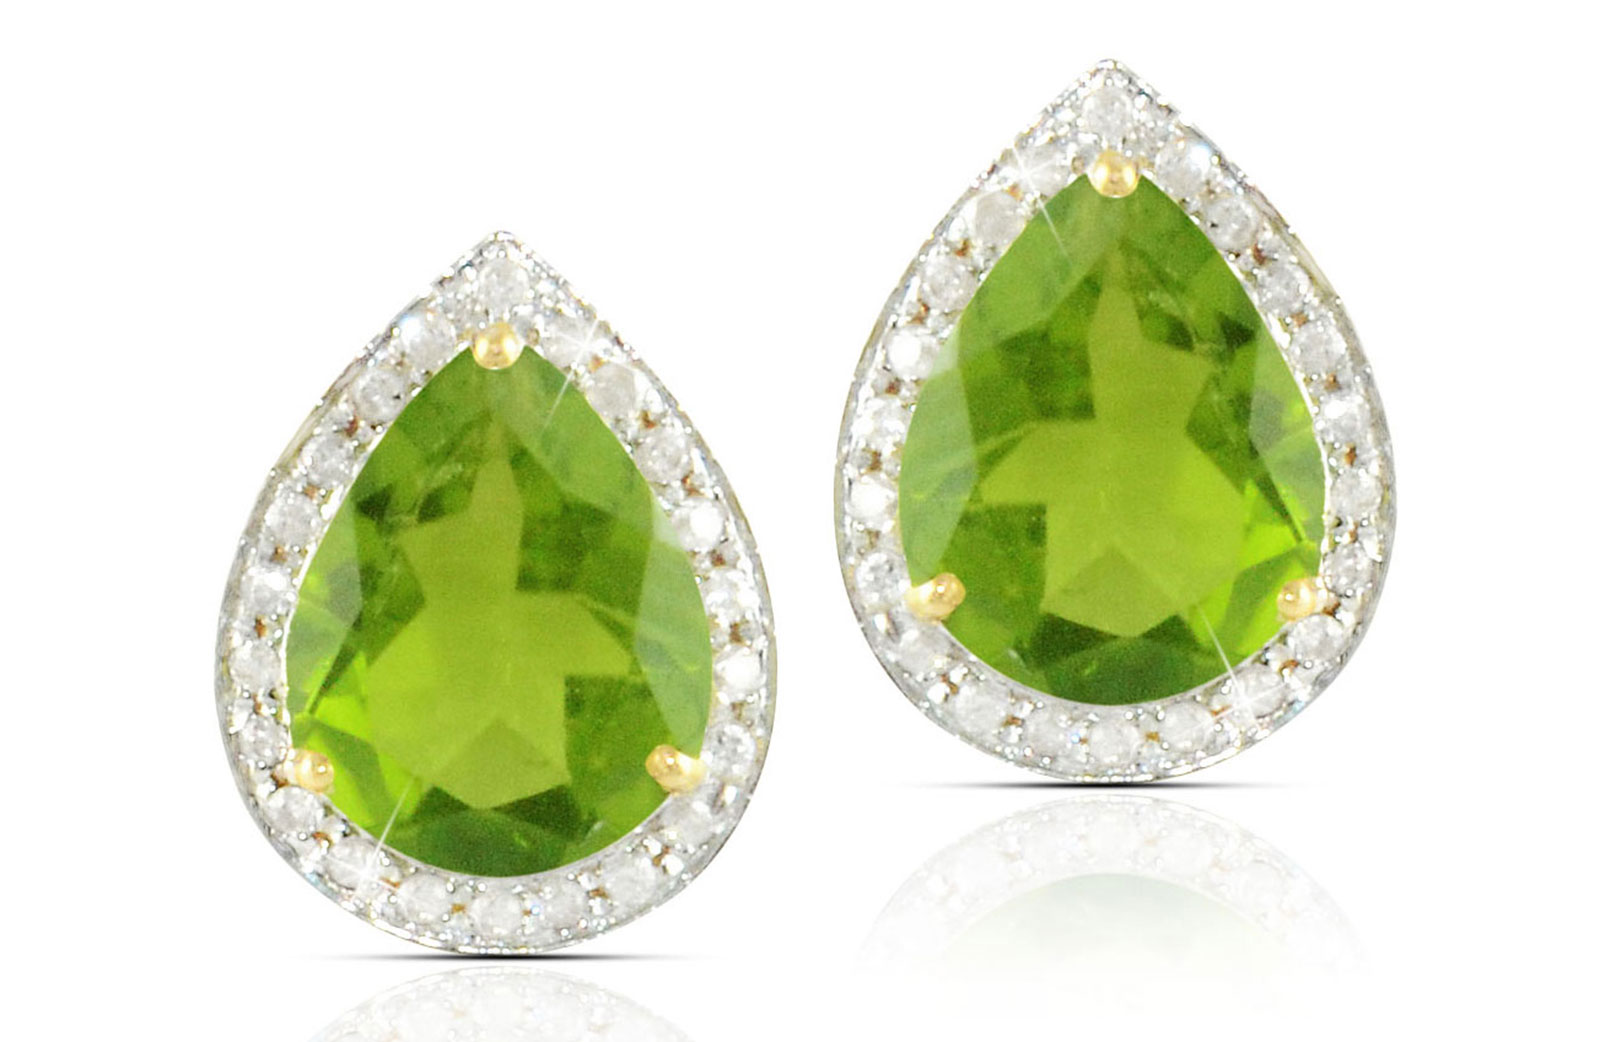 Vera Perla 18k  Gold 10mm Genuine Drop  Cut Peridot 0.24Ct Genuine Diamonds earrings